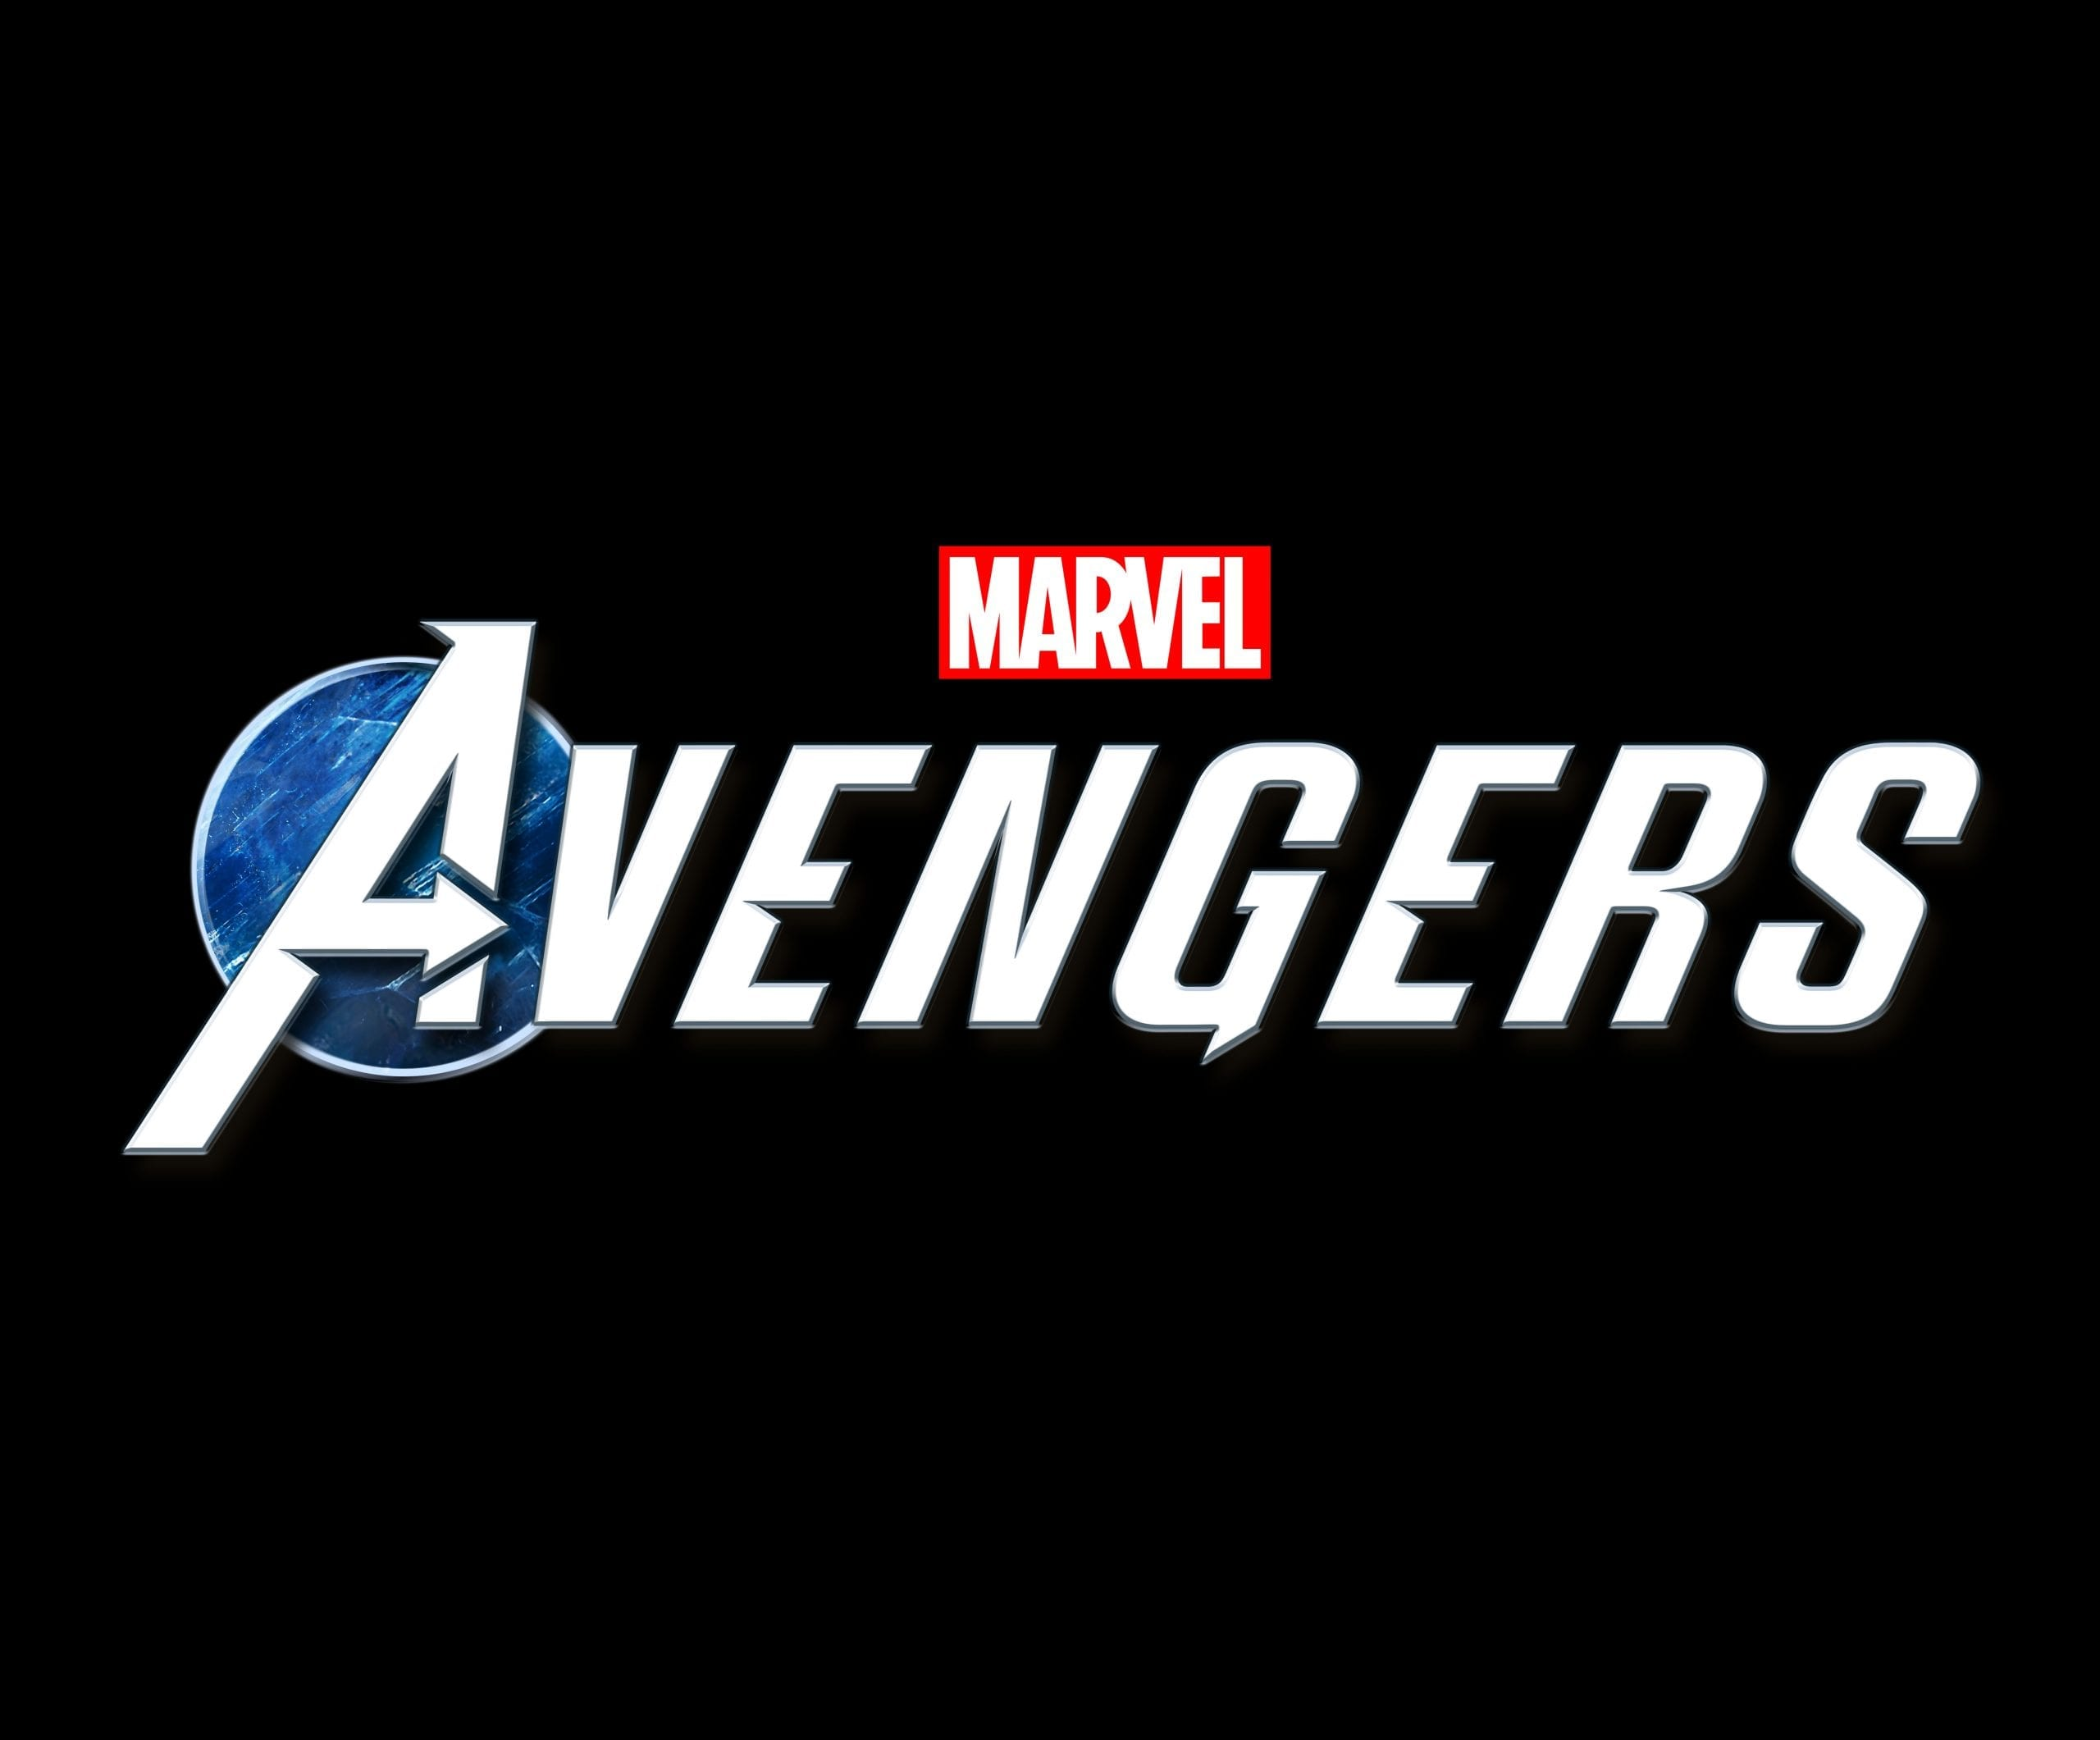 MARVEL'S AVENGERS: EARTH'S MIGHTIEST EDITION, DELUXE EDITION AND PRE-ORDER BONUS DETAILS ANNOUNCED